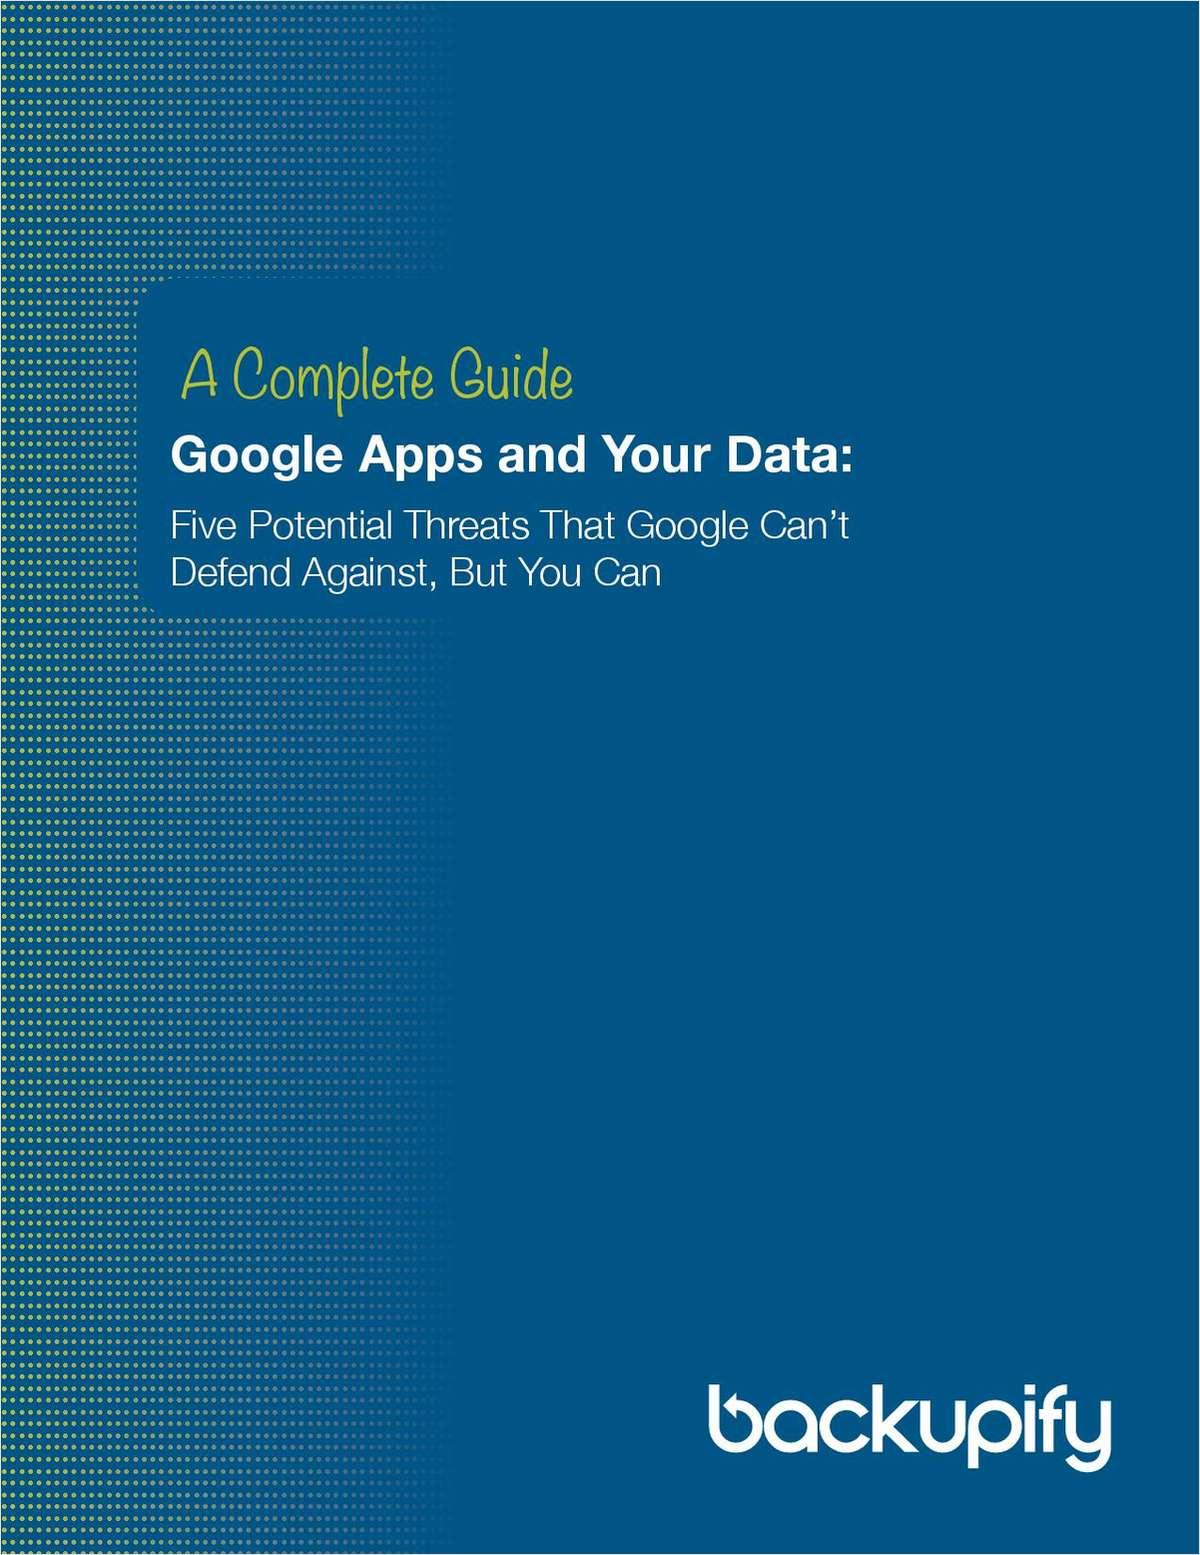 A Complete Guide: Google Apps and Your Data -- Five Threats that Google Can't Defend Against, But You Can